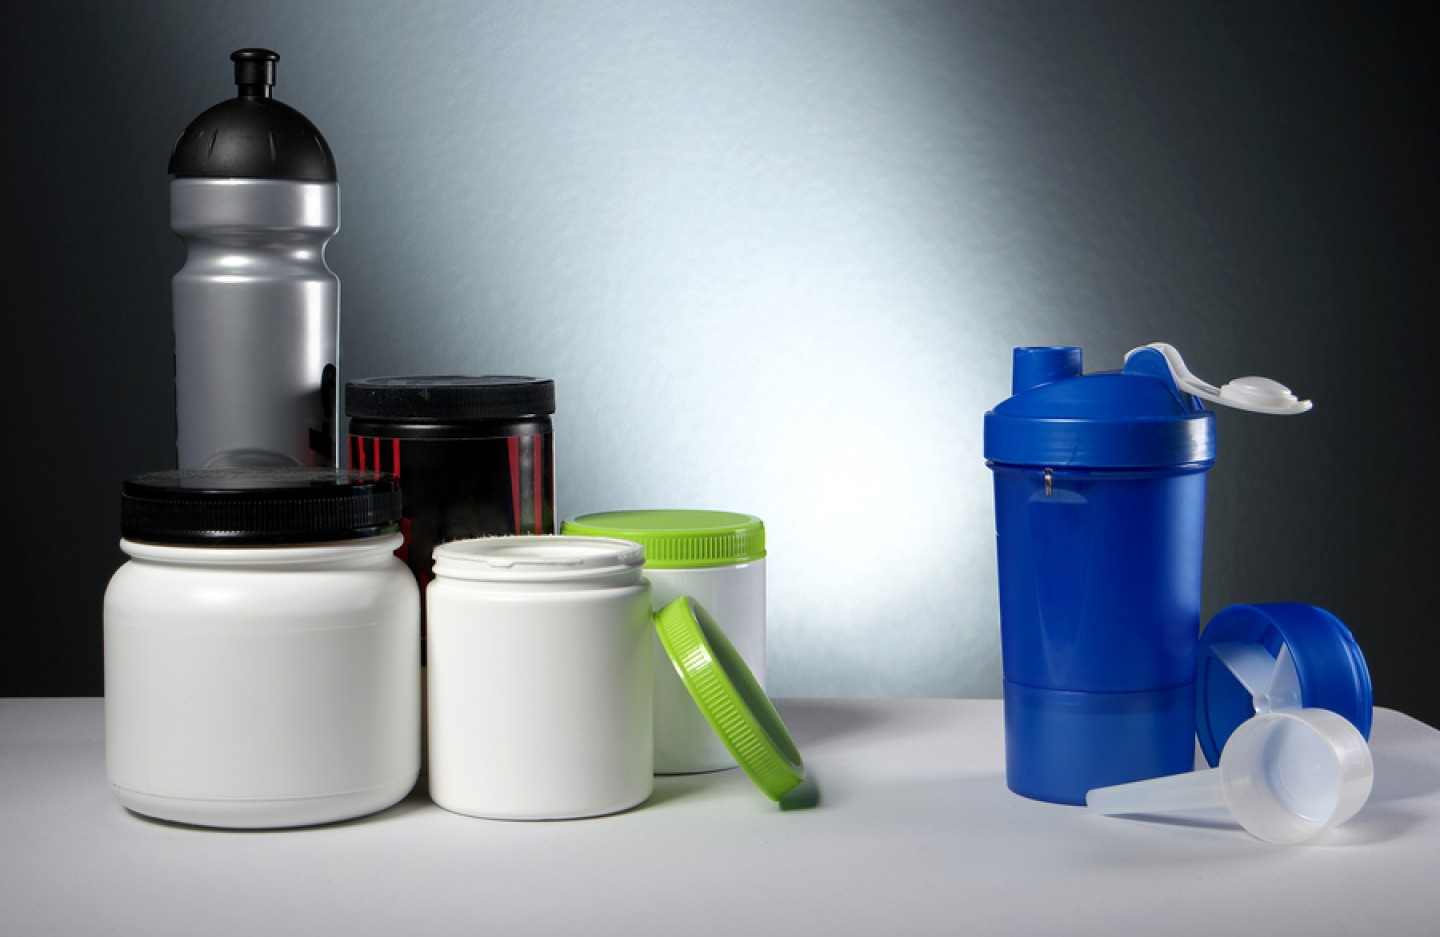 Sport Nutrition Supplement containers with shaker